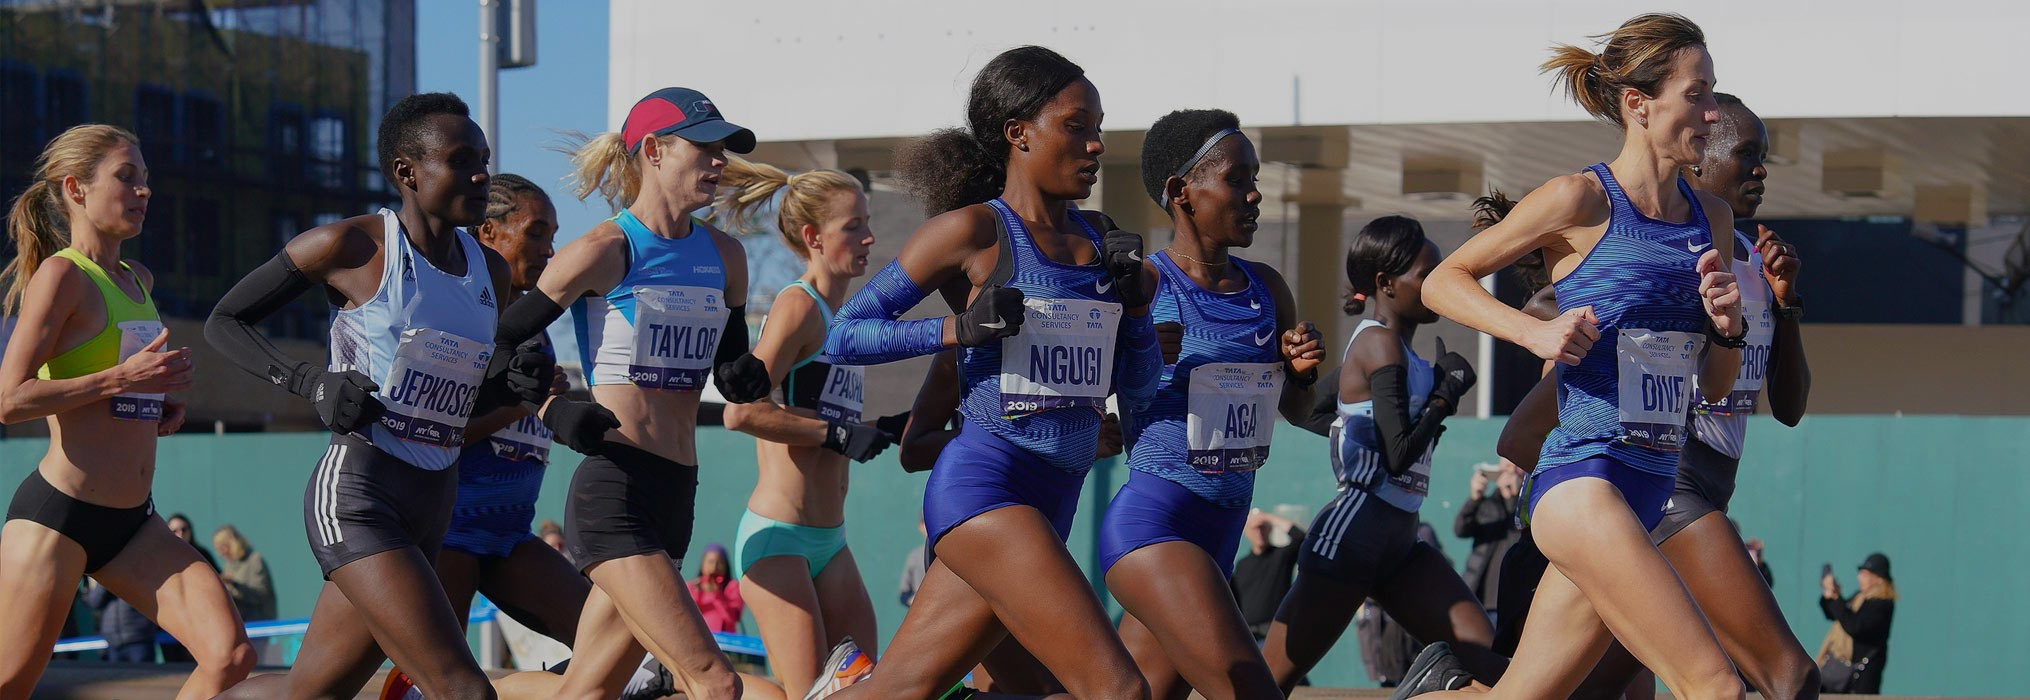 The women's elite runners leaders at the 2019 NYC Marathon